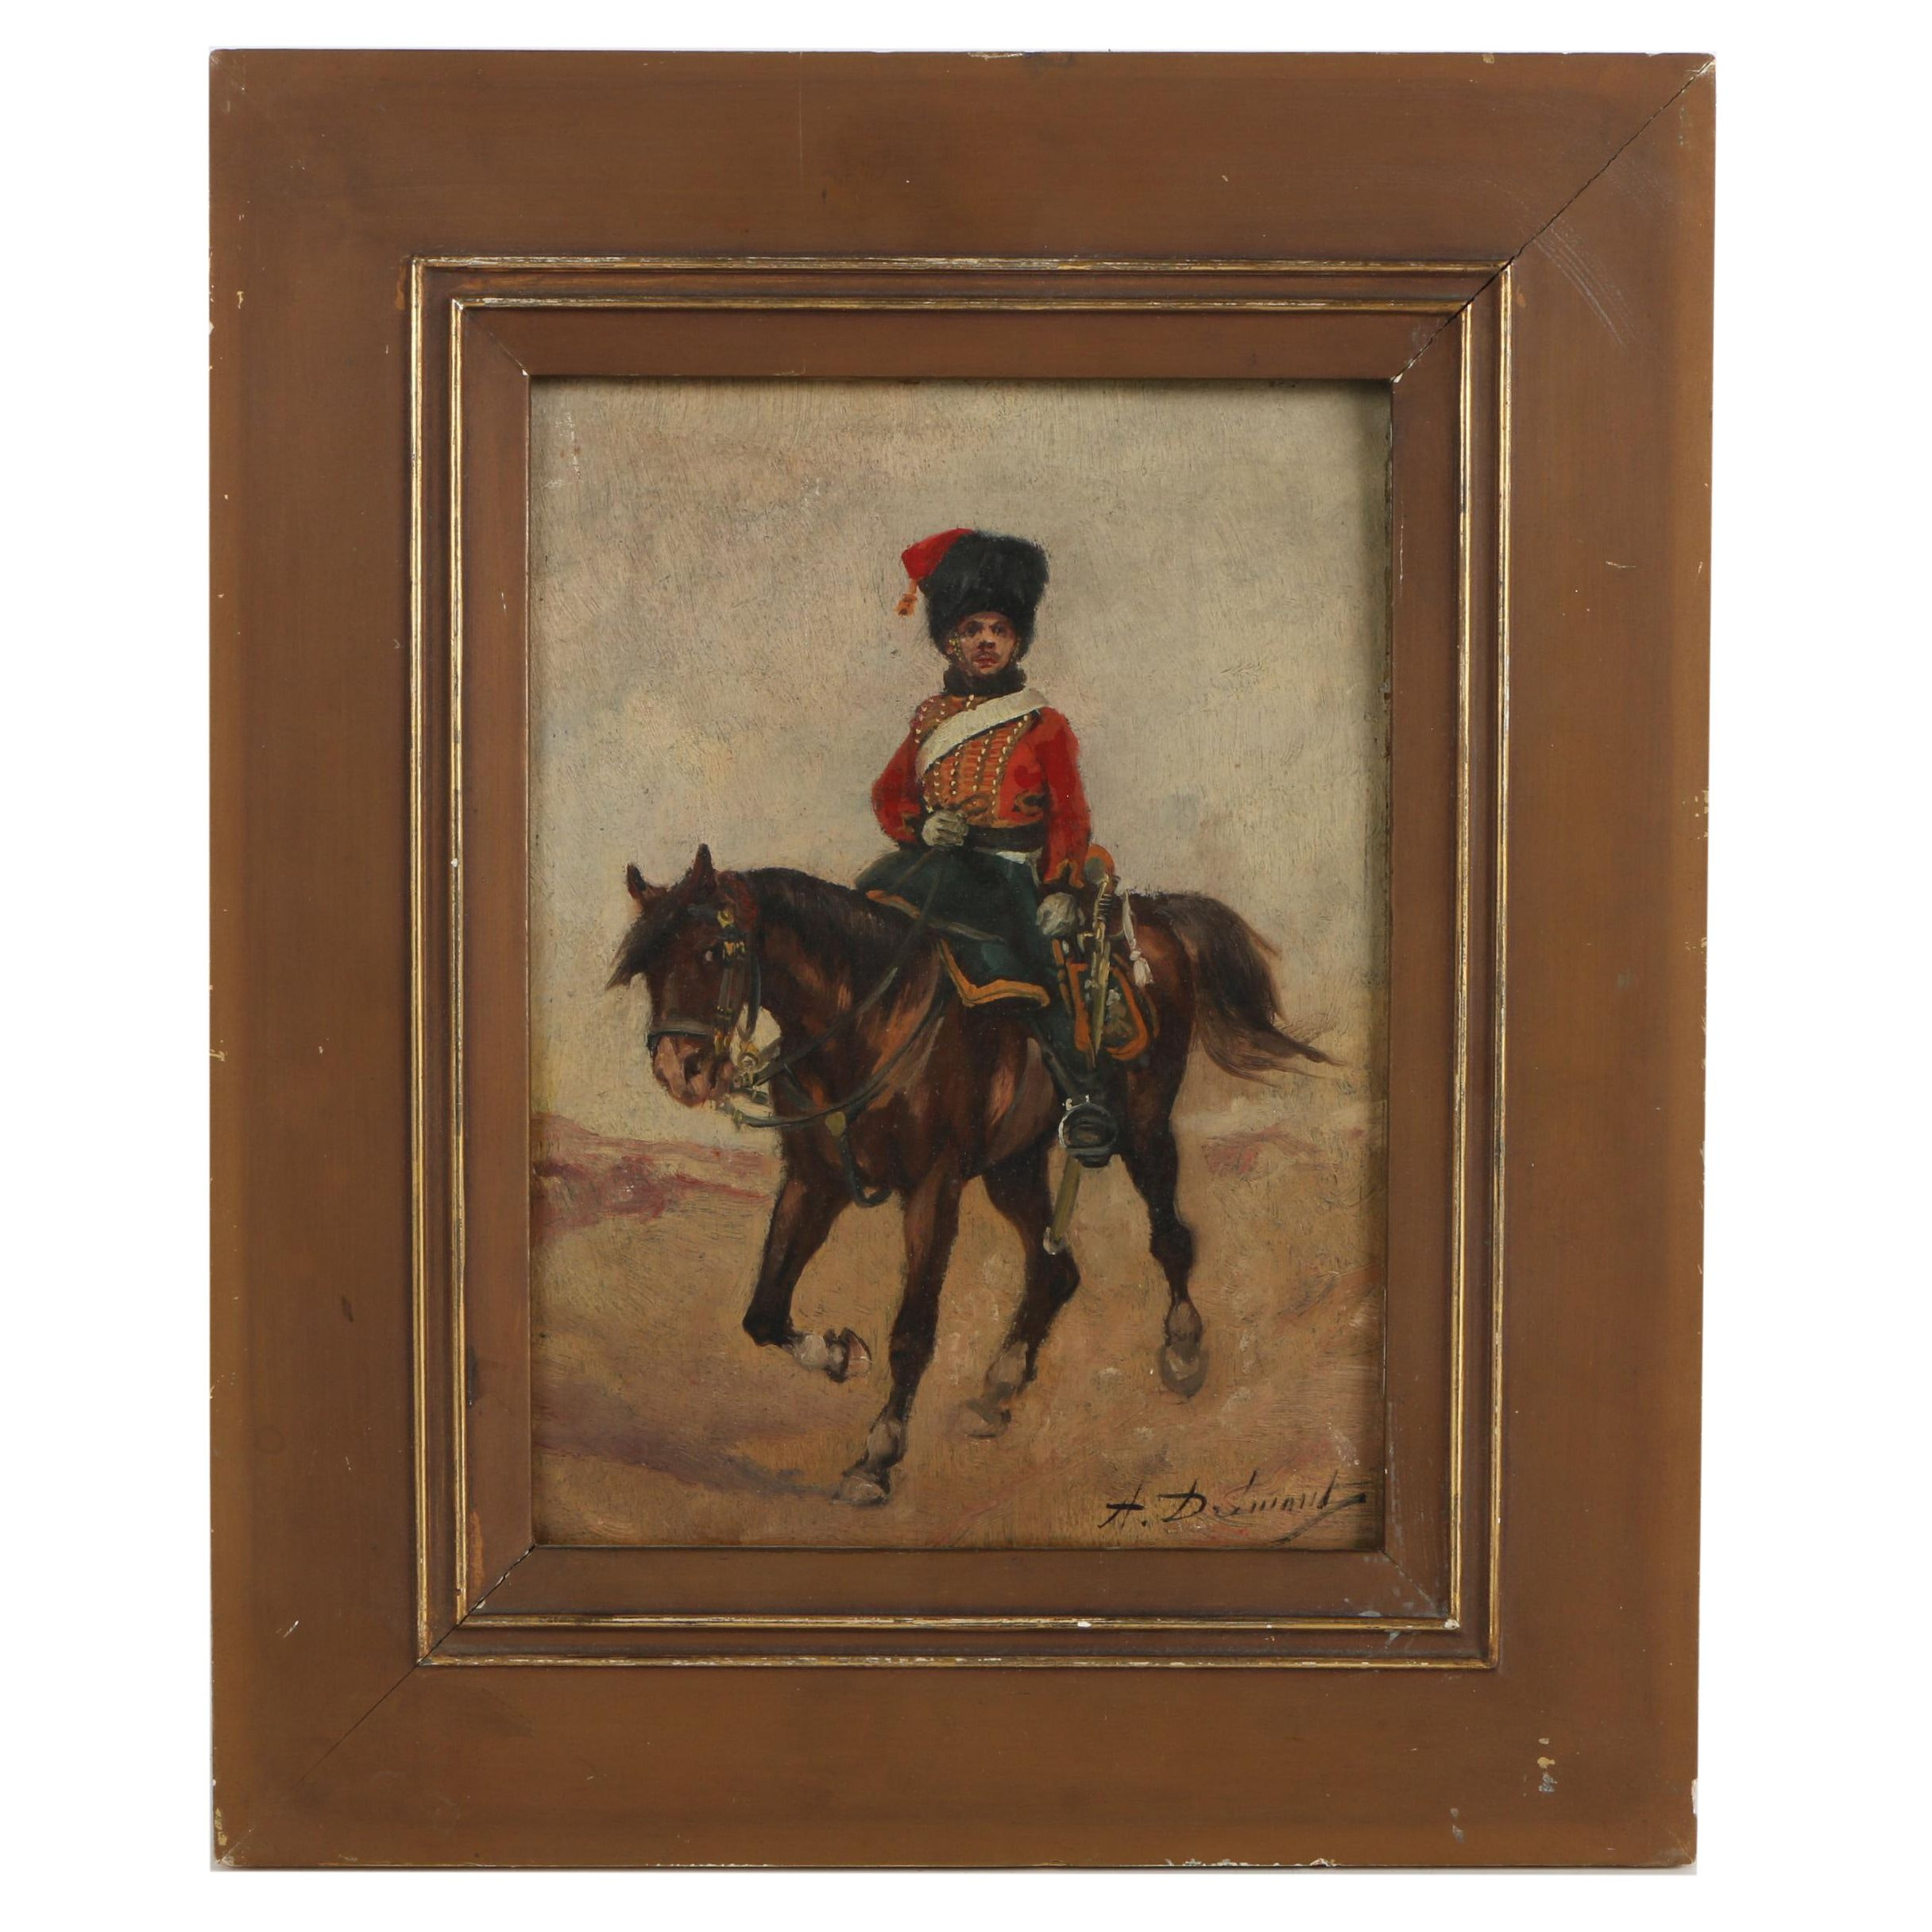 Alfred Dumont Oil Painting of a Soldier on Horseback